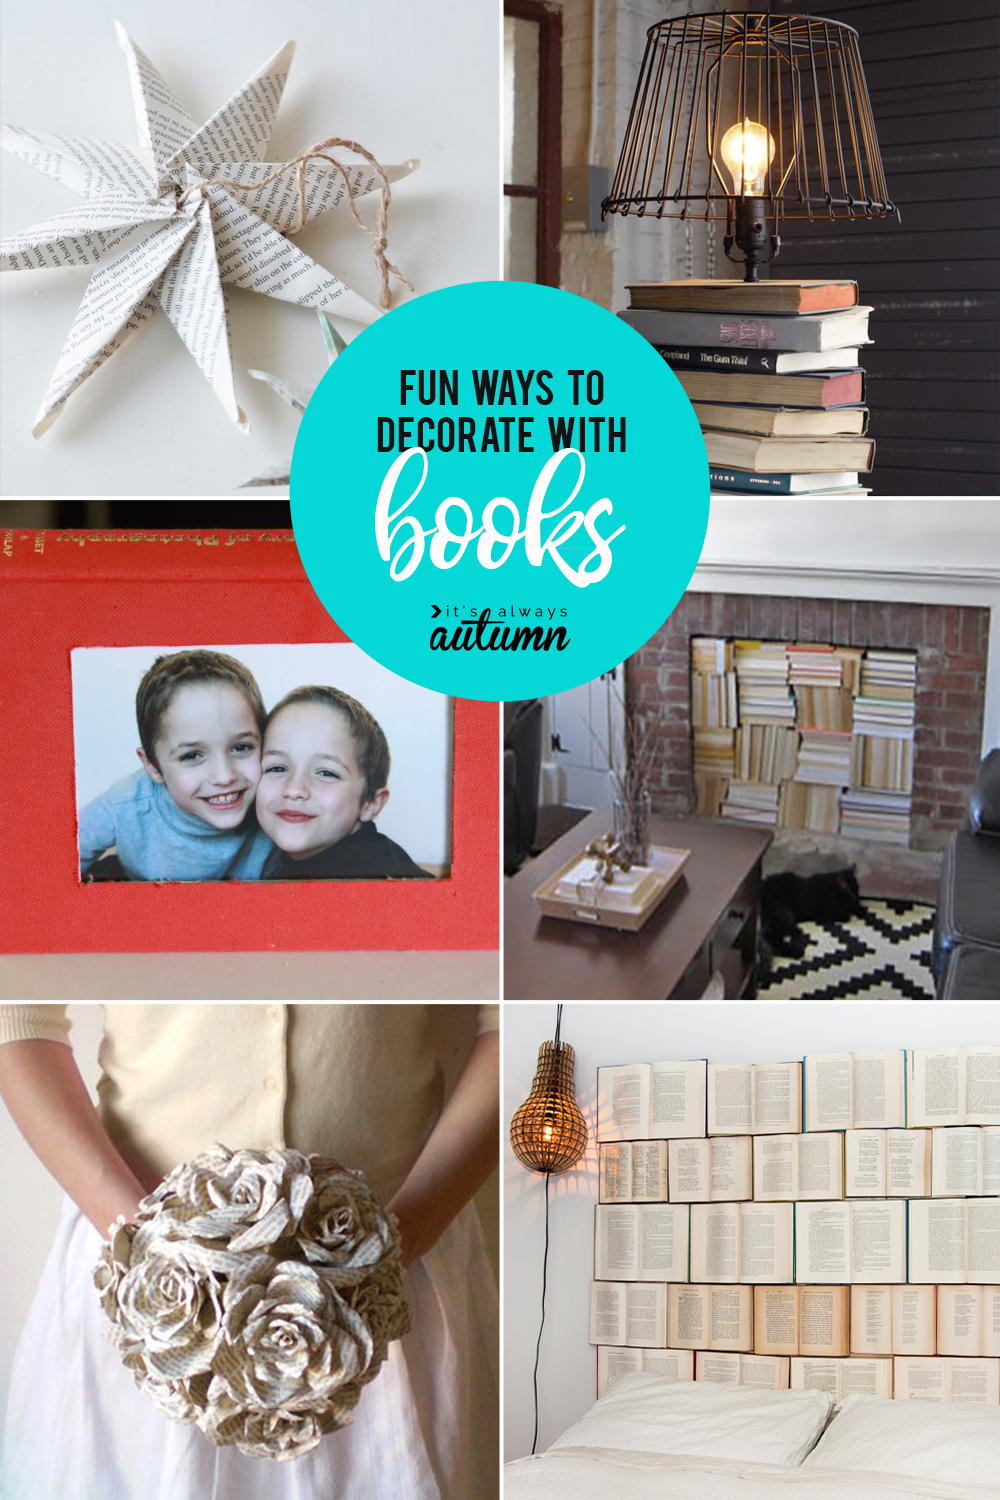 How to decorate with books and book pages